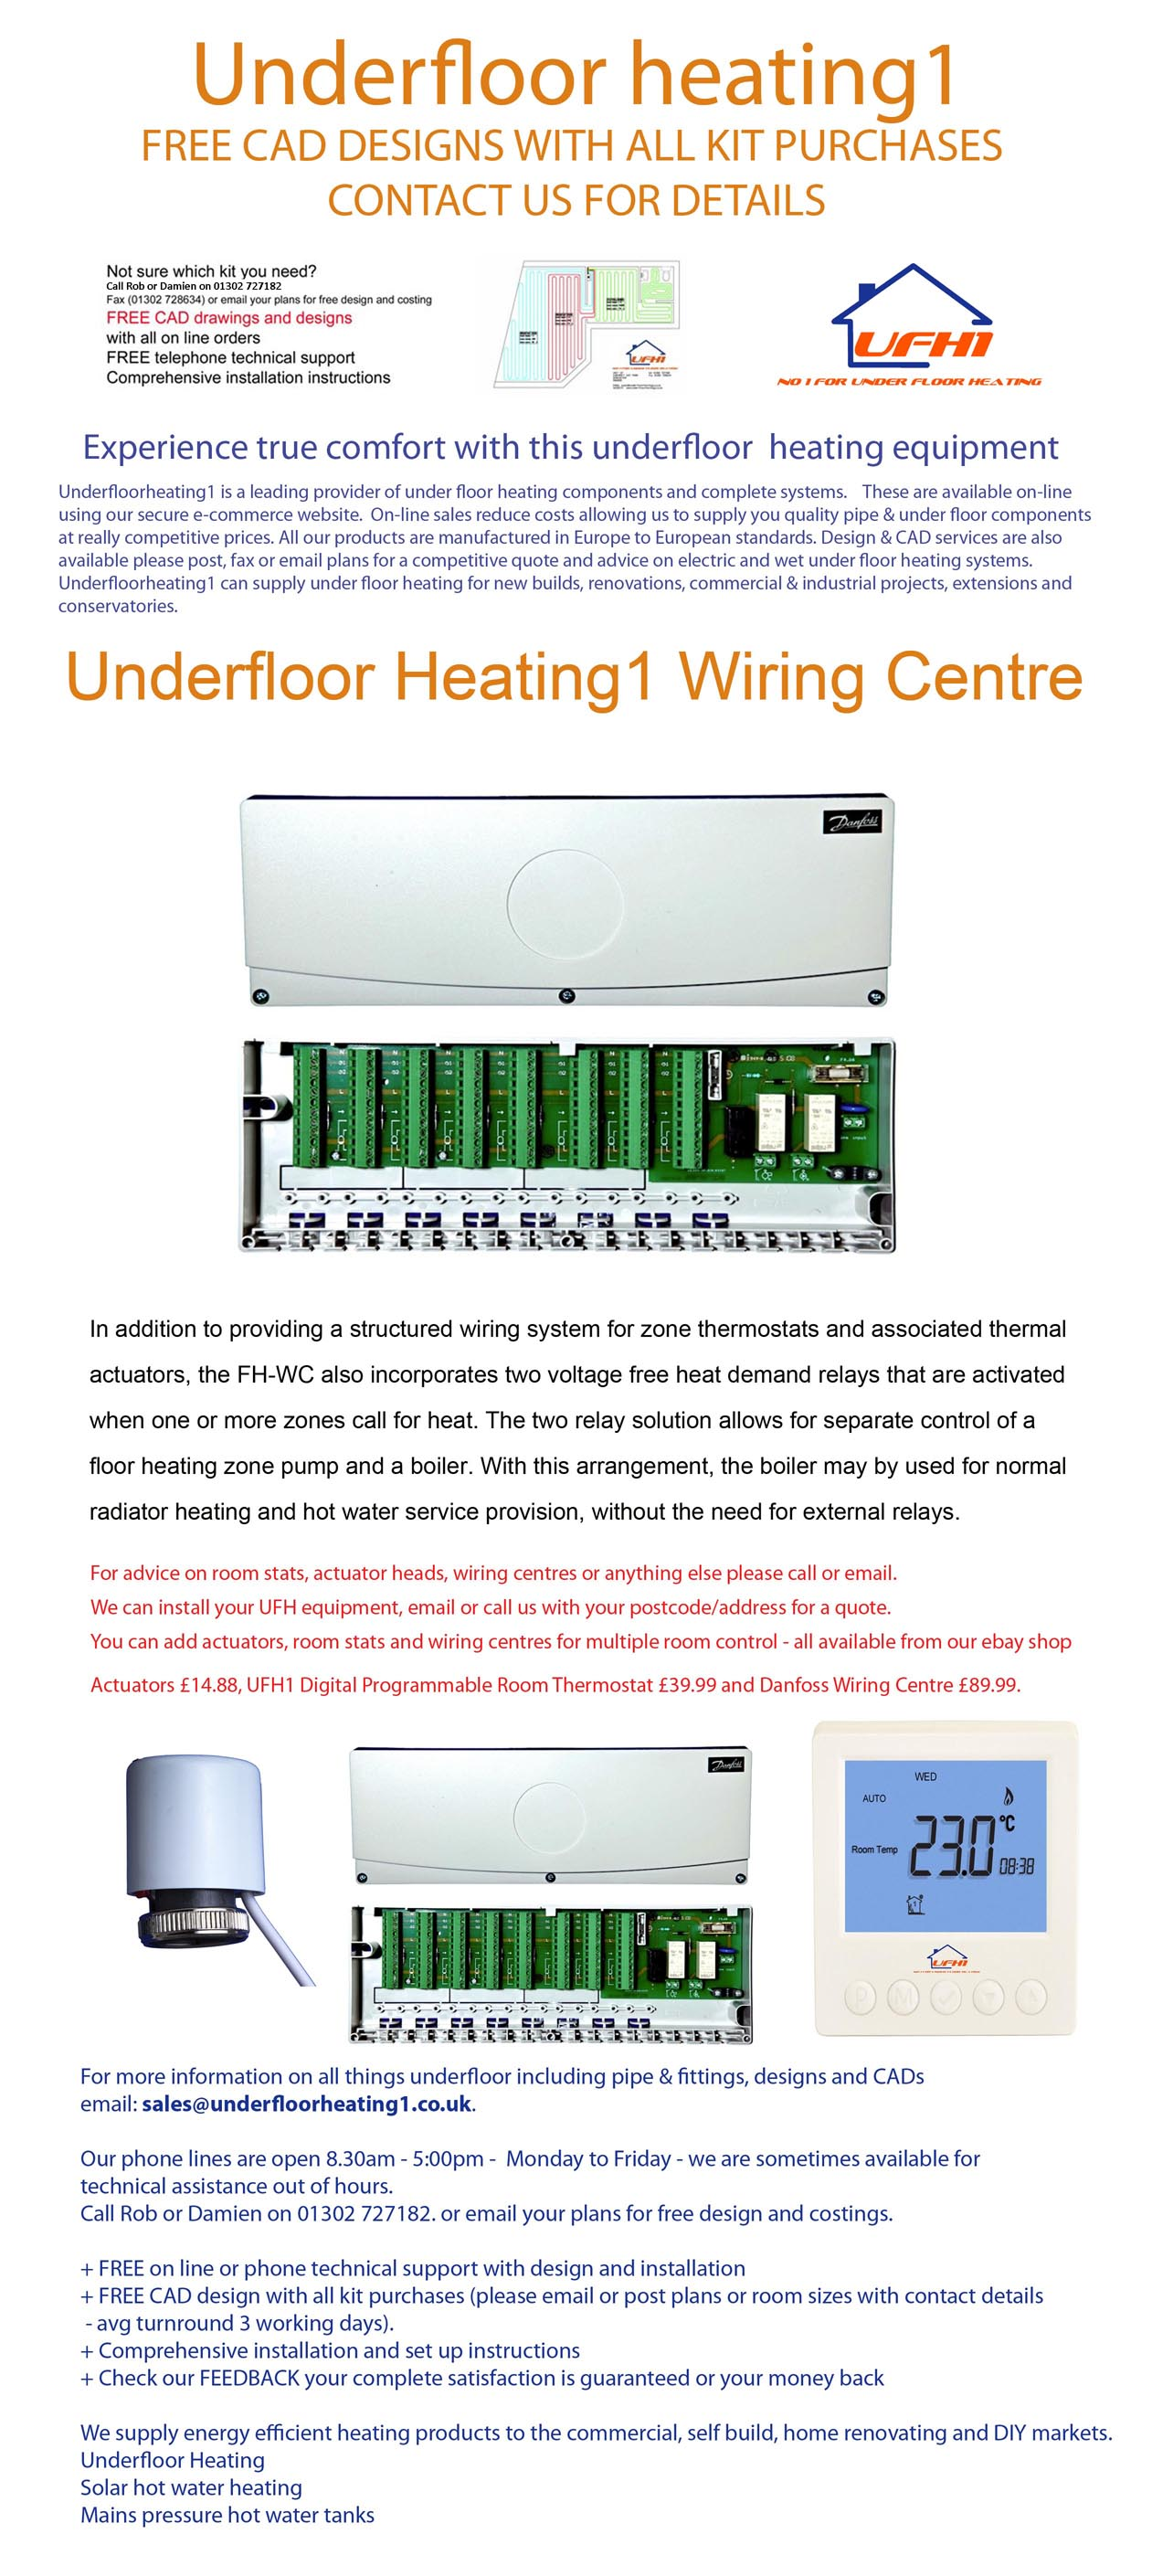 Danfoss underfloor heating wiring centre instructions